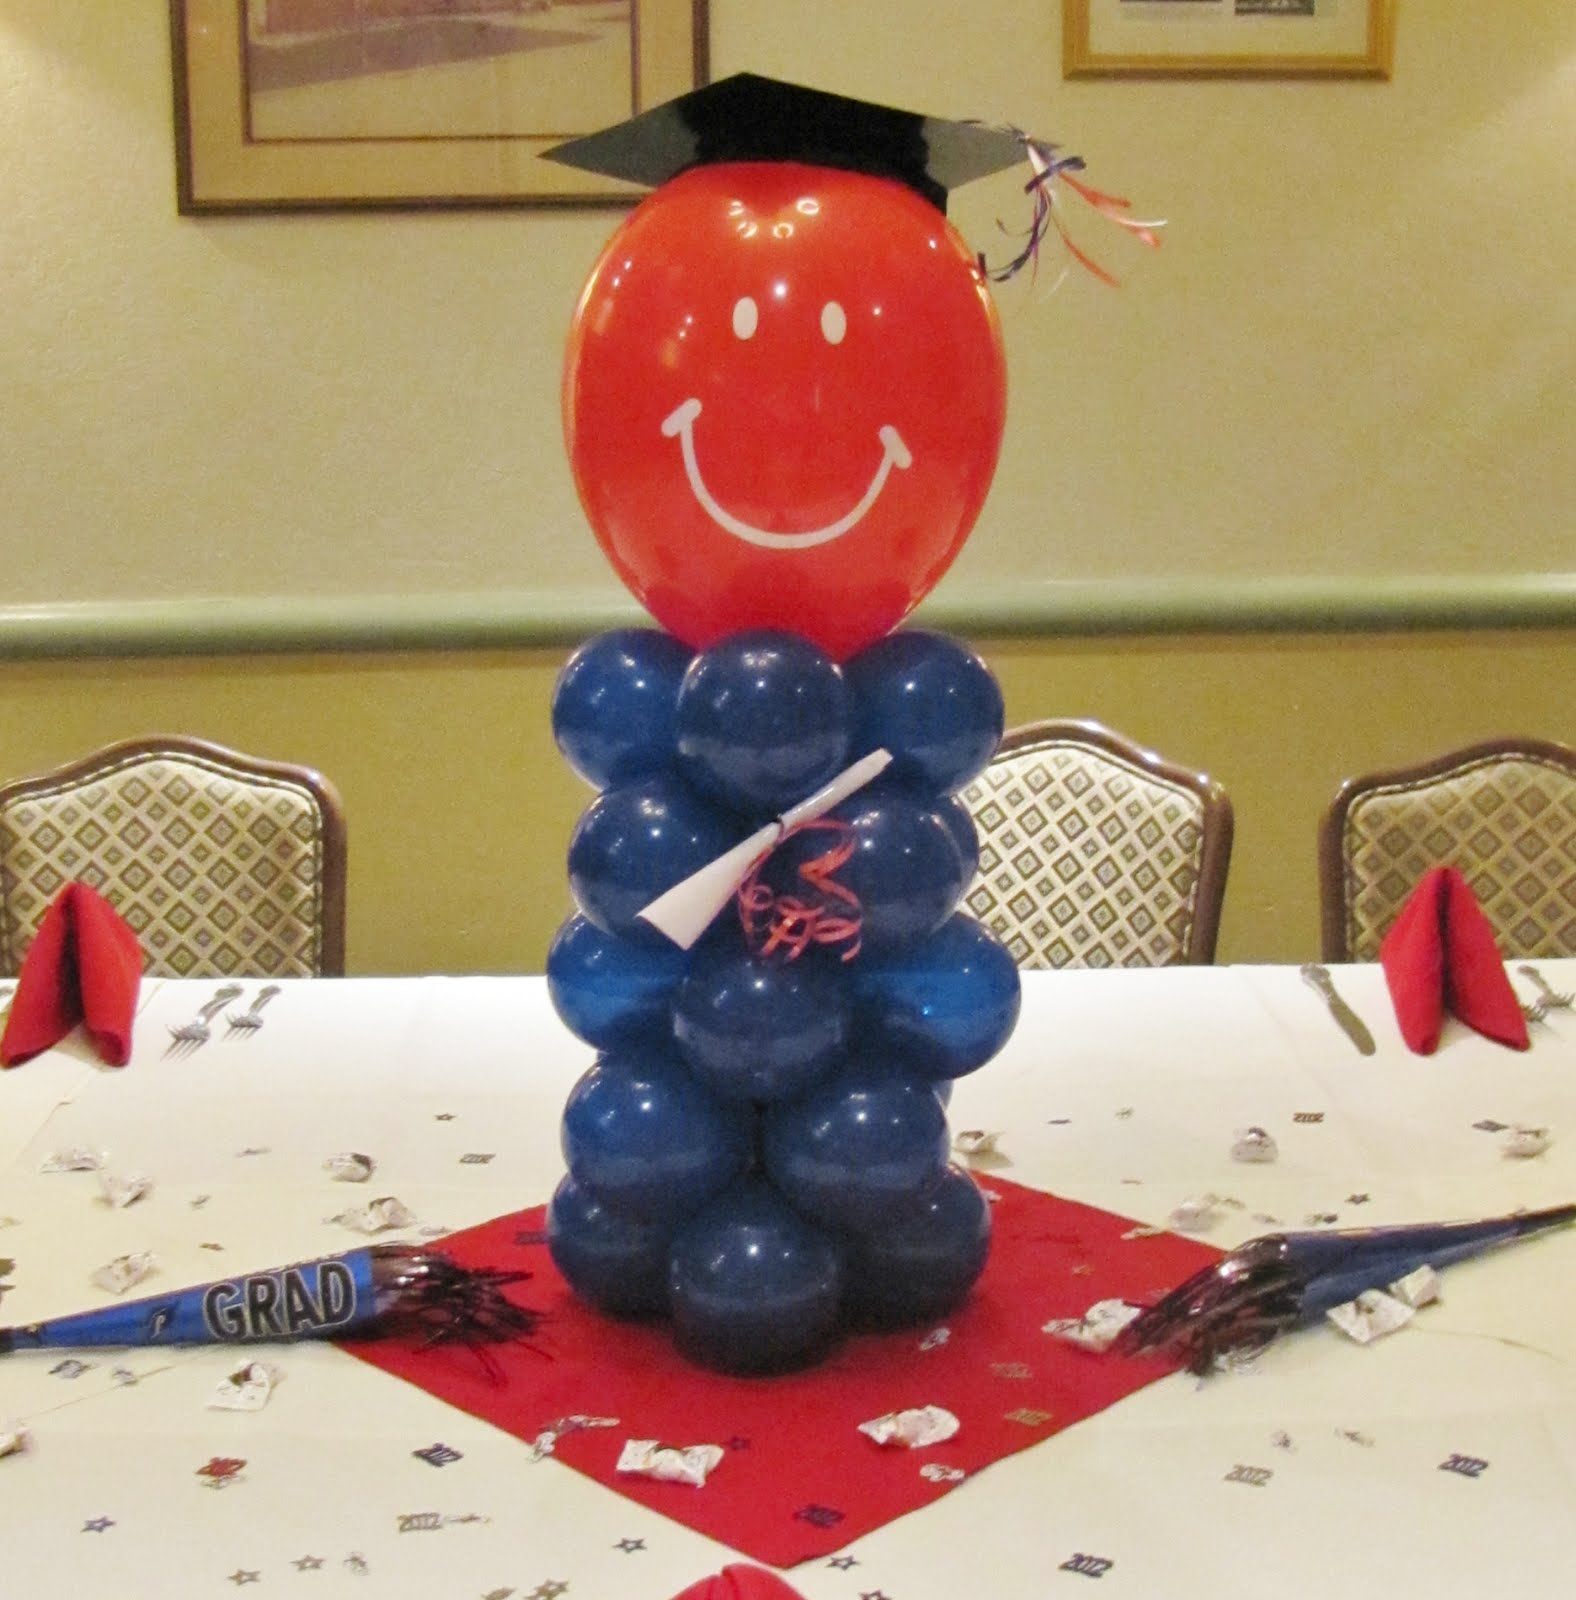 Home Decor Parties Companies: Party People Event Decorating Company: Graduation Party